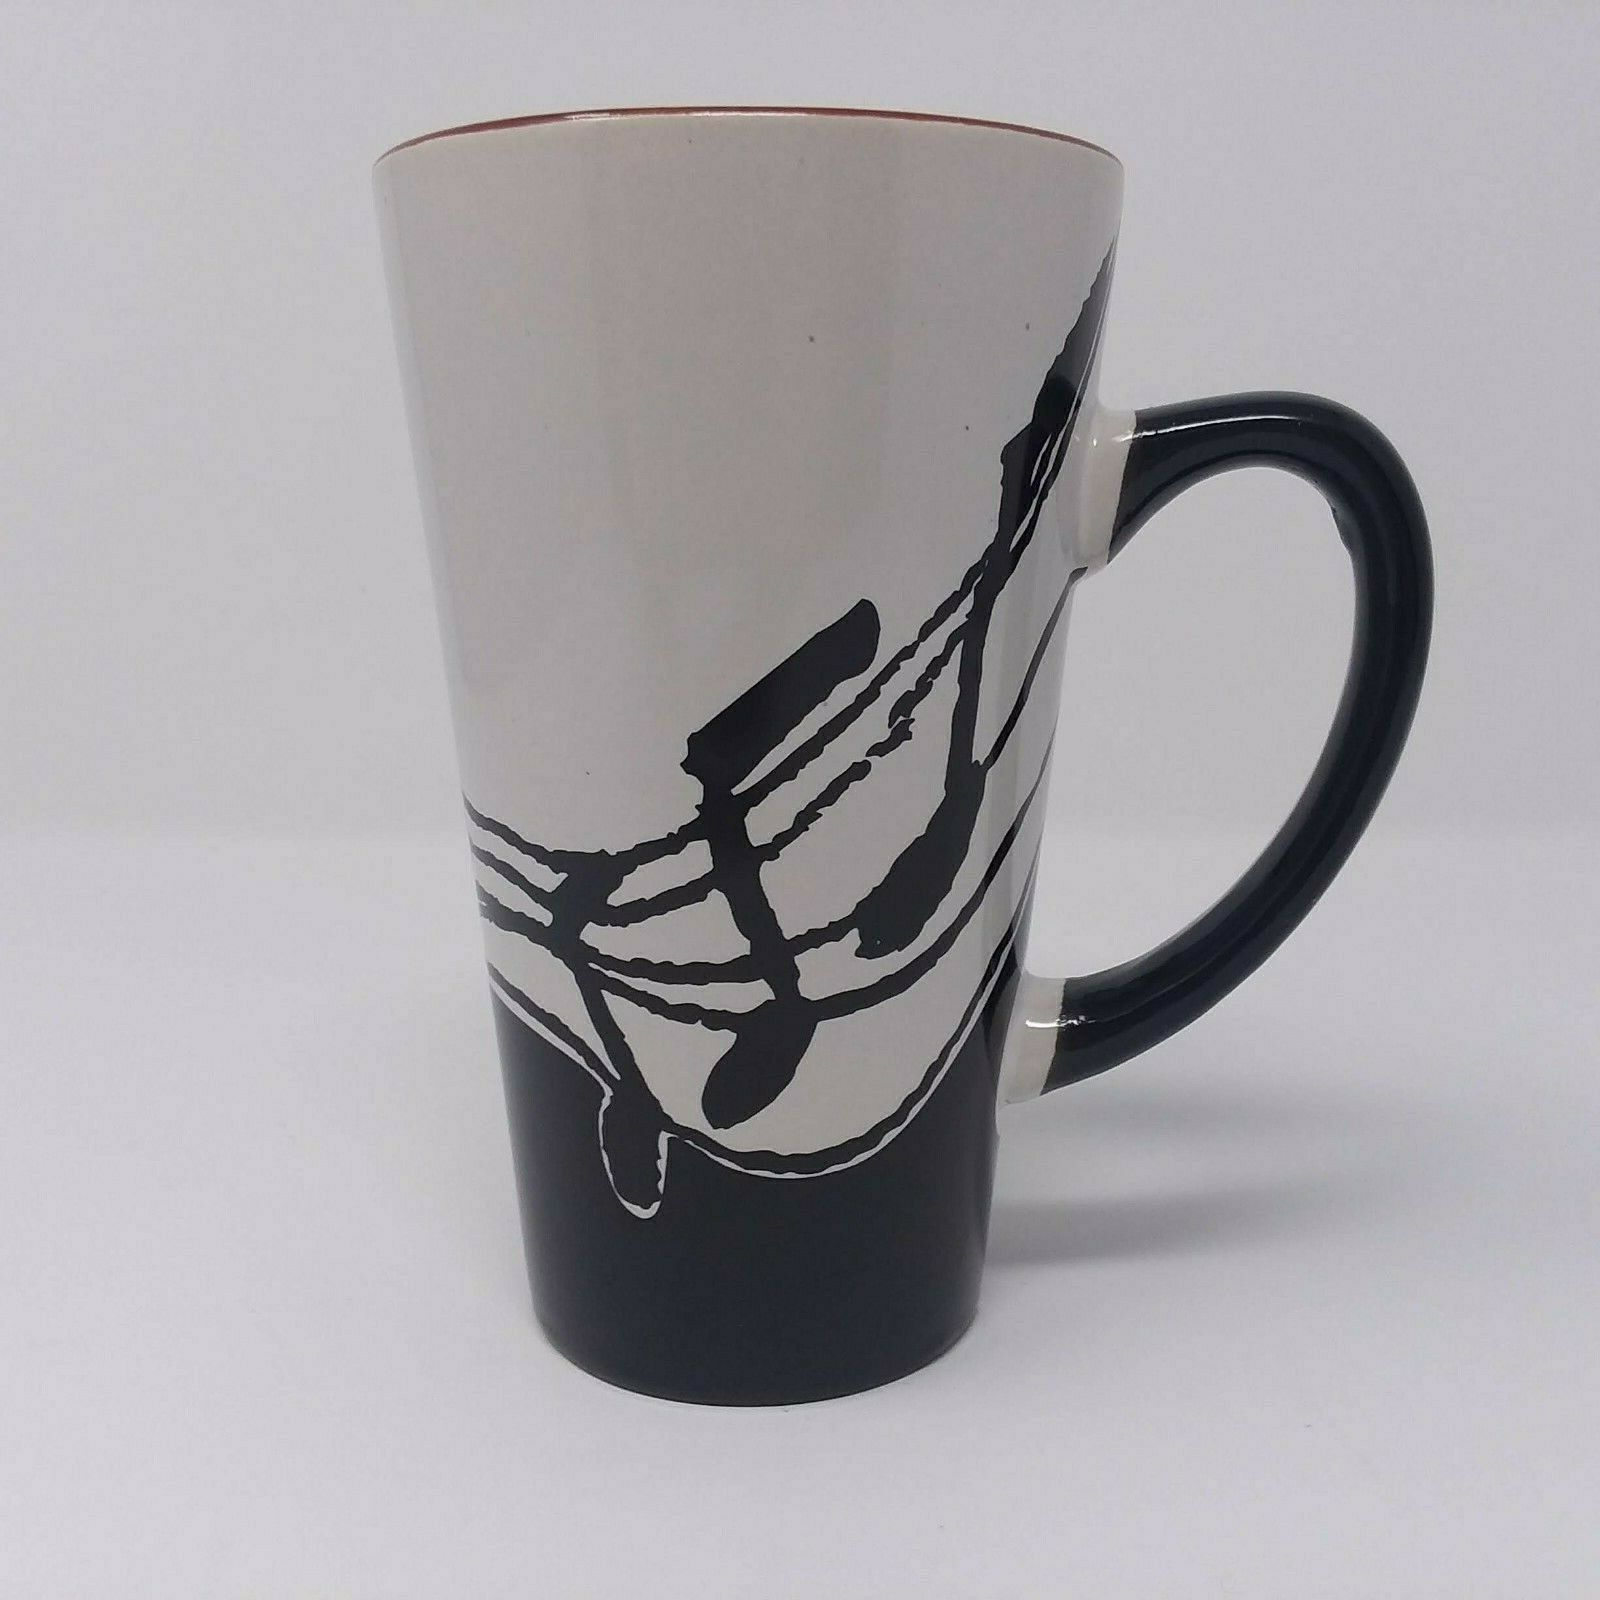 Primary image for Music Notes Ceramic Coffee Tea Mug Cup Albert Elovitz Aim Gifts Black White 2007